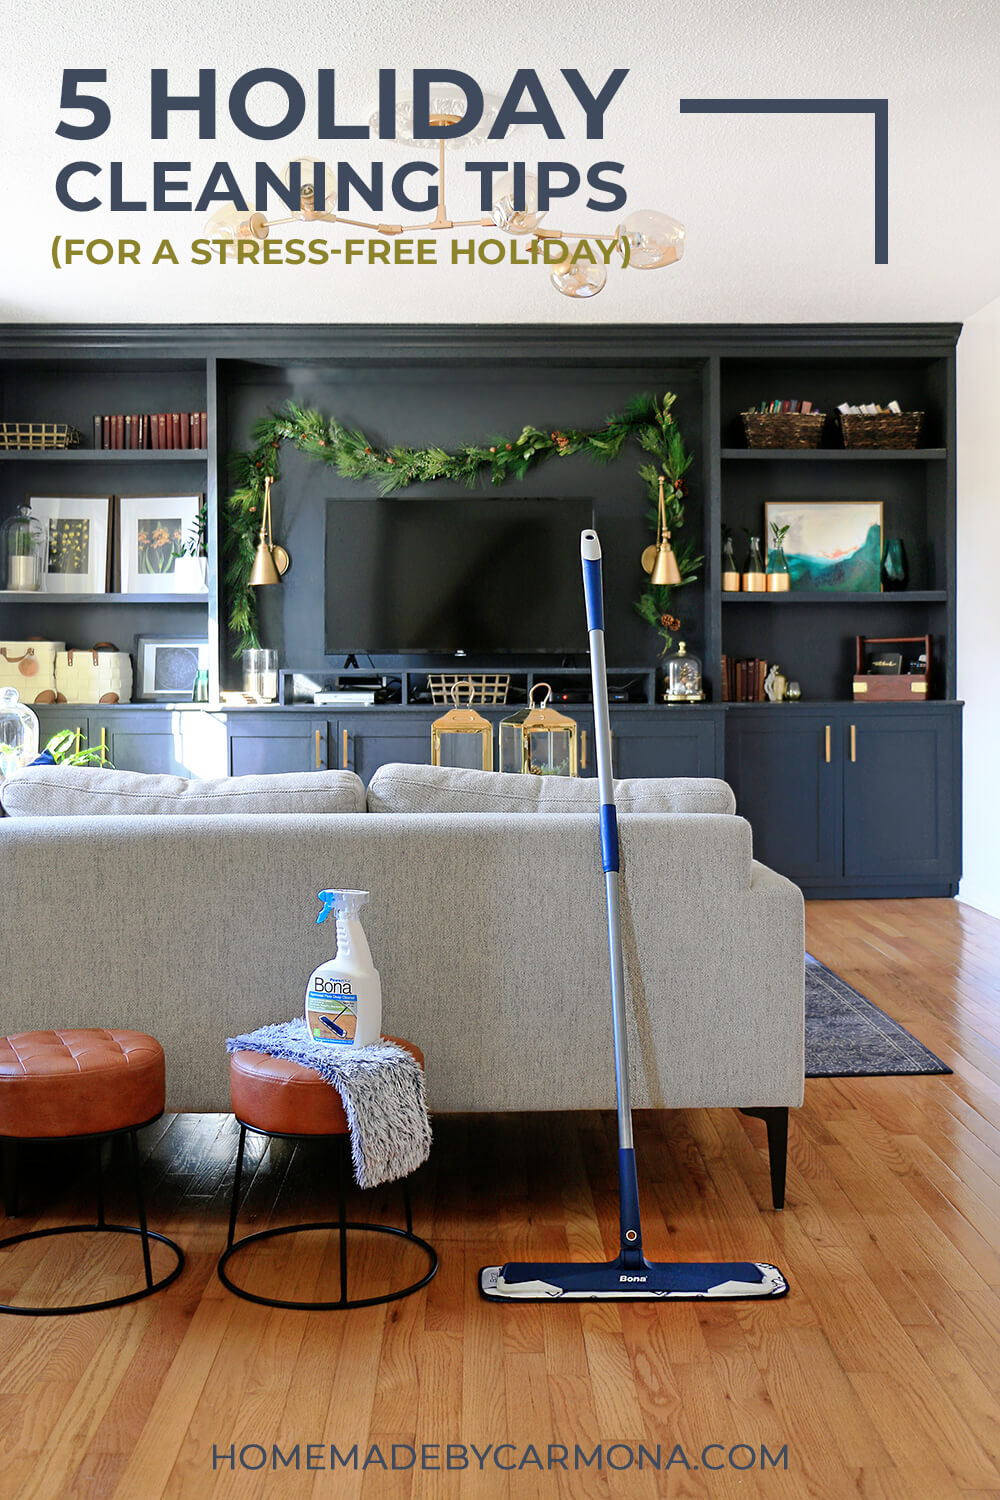 5-Holiday-Cleaning-Tips-for-a-Stress-Free-Holiday